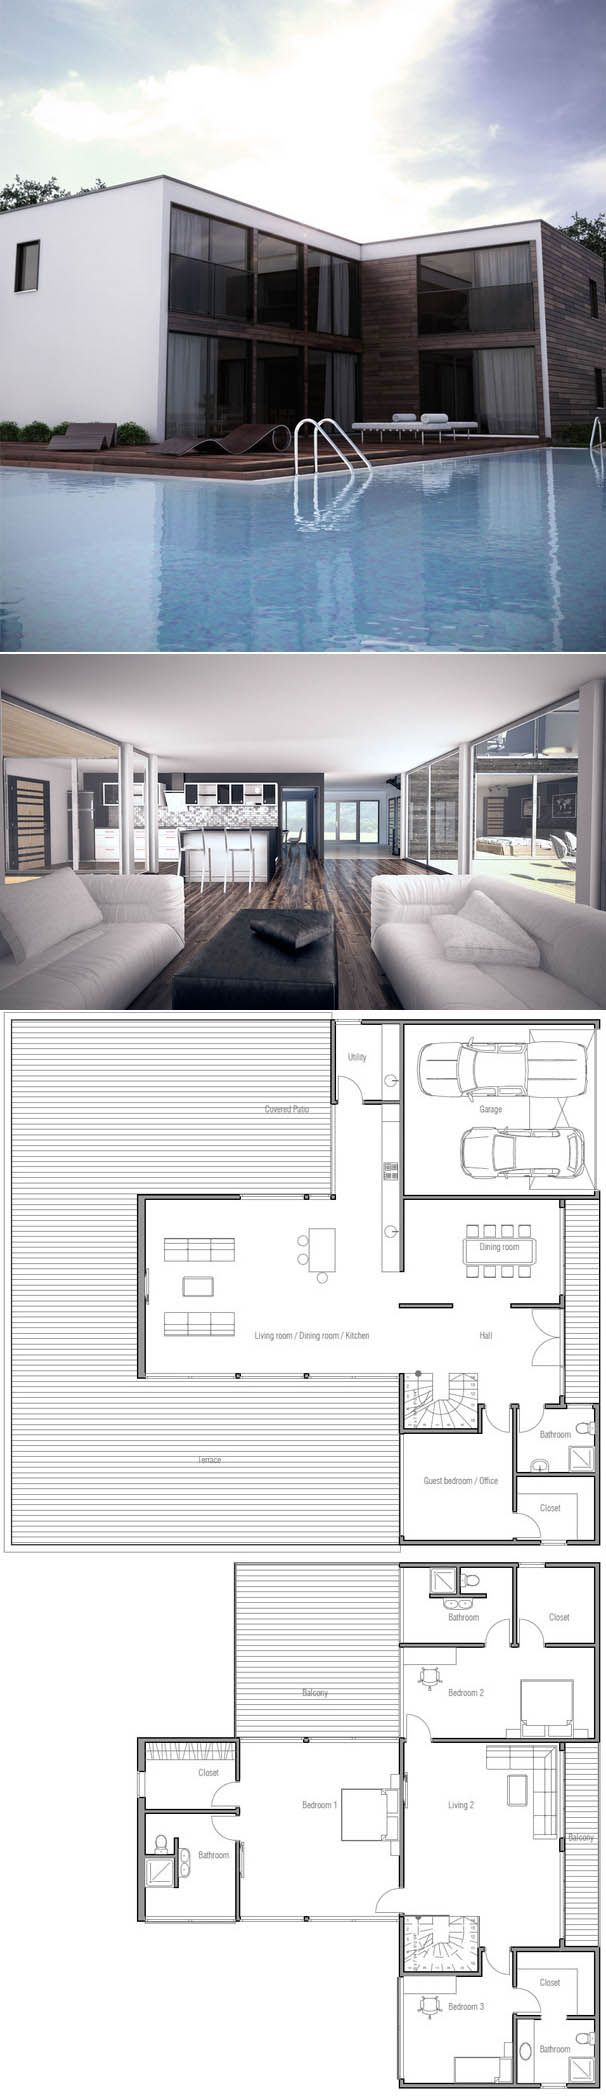 Casa moderna planta de indian beach pinterest house plans and design also rh